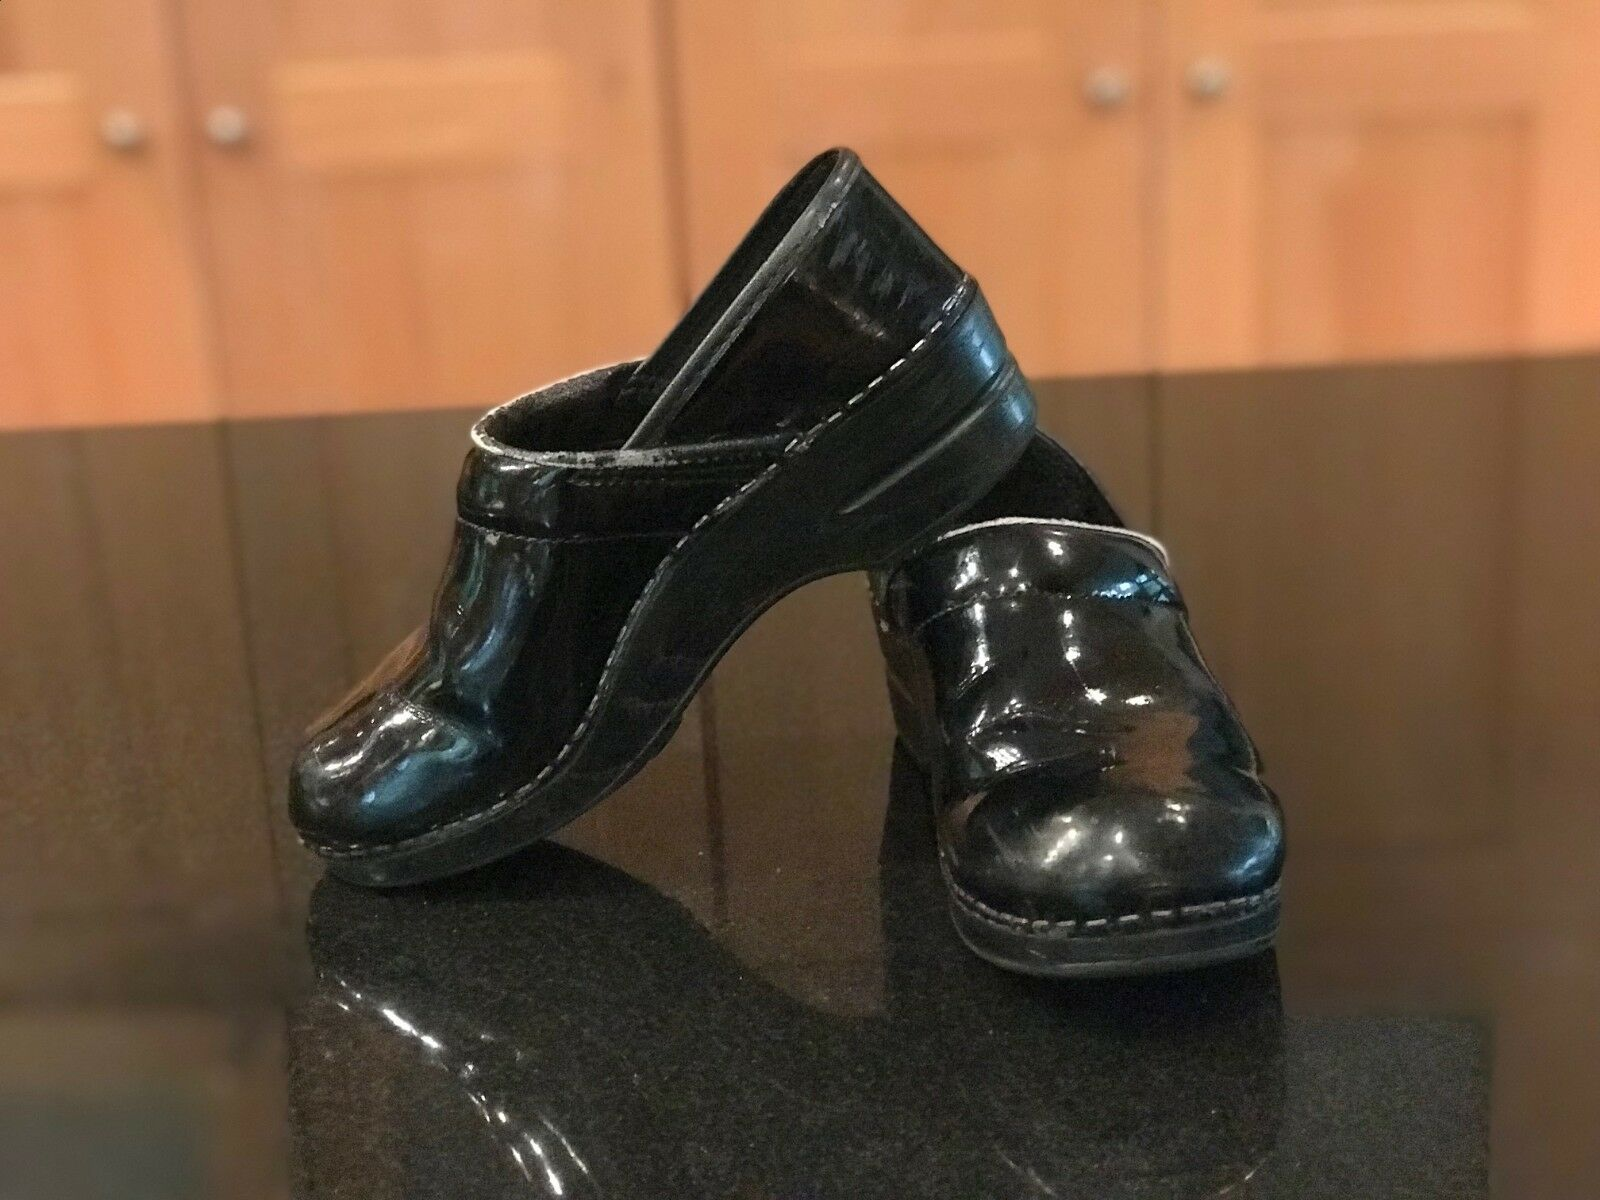 Dansko Pro Black Patent Leather Professional Clogs Women's 36 / 5.5-6 US